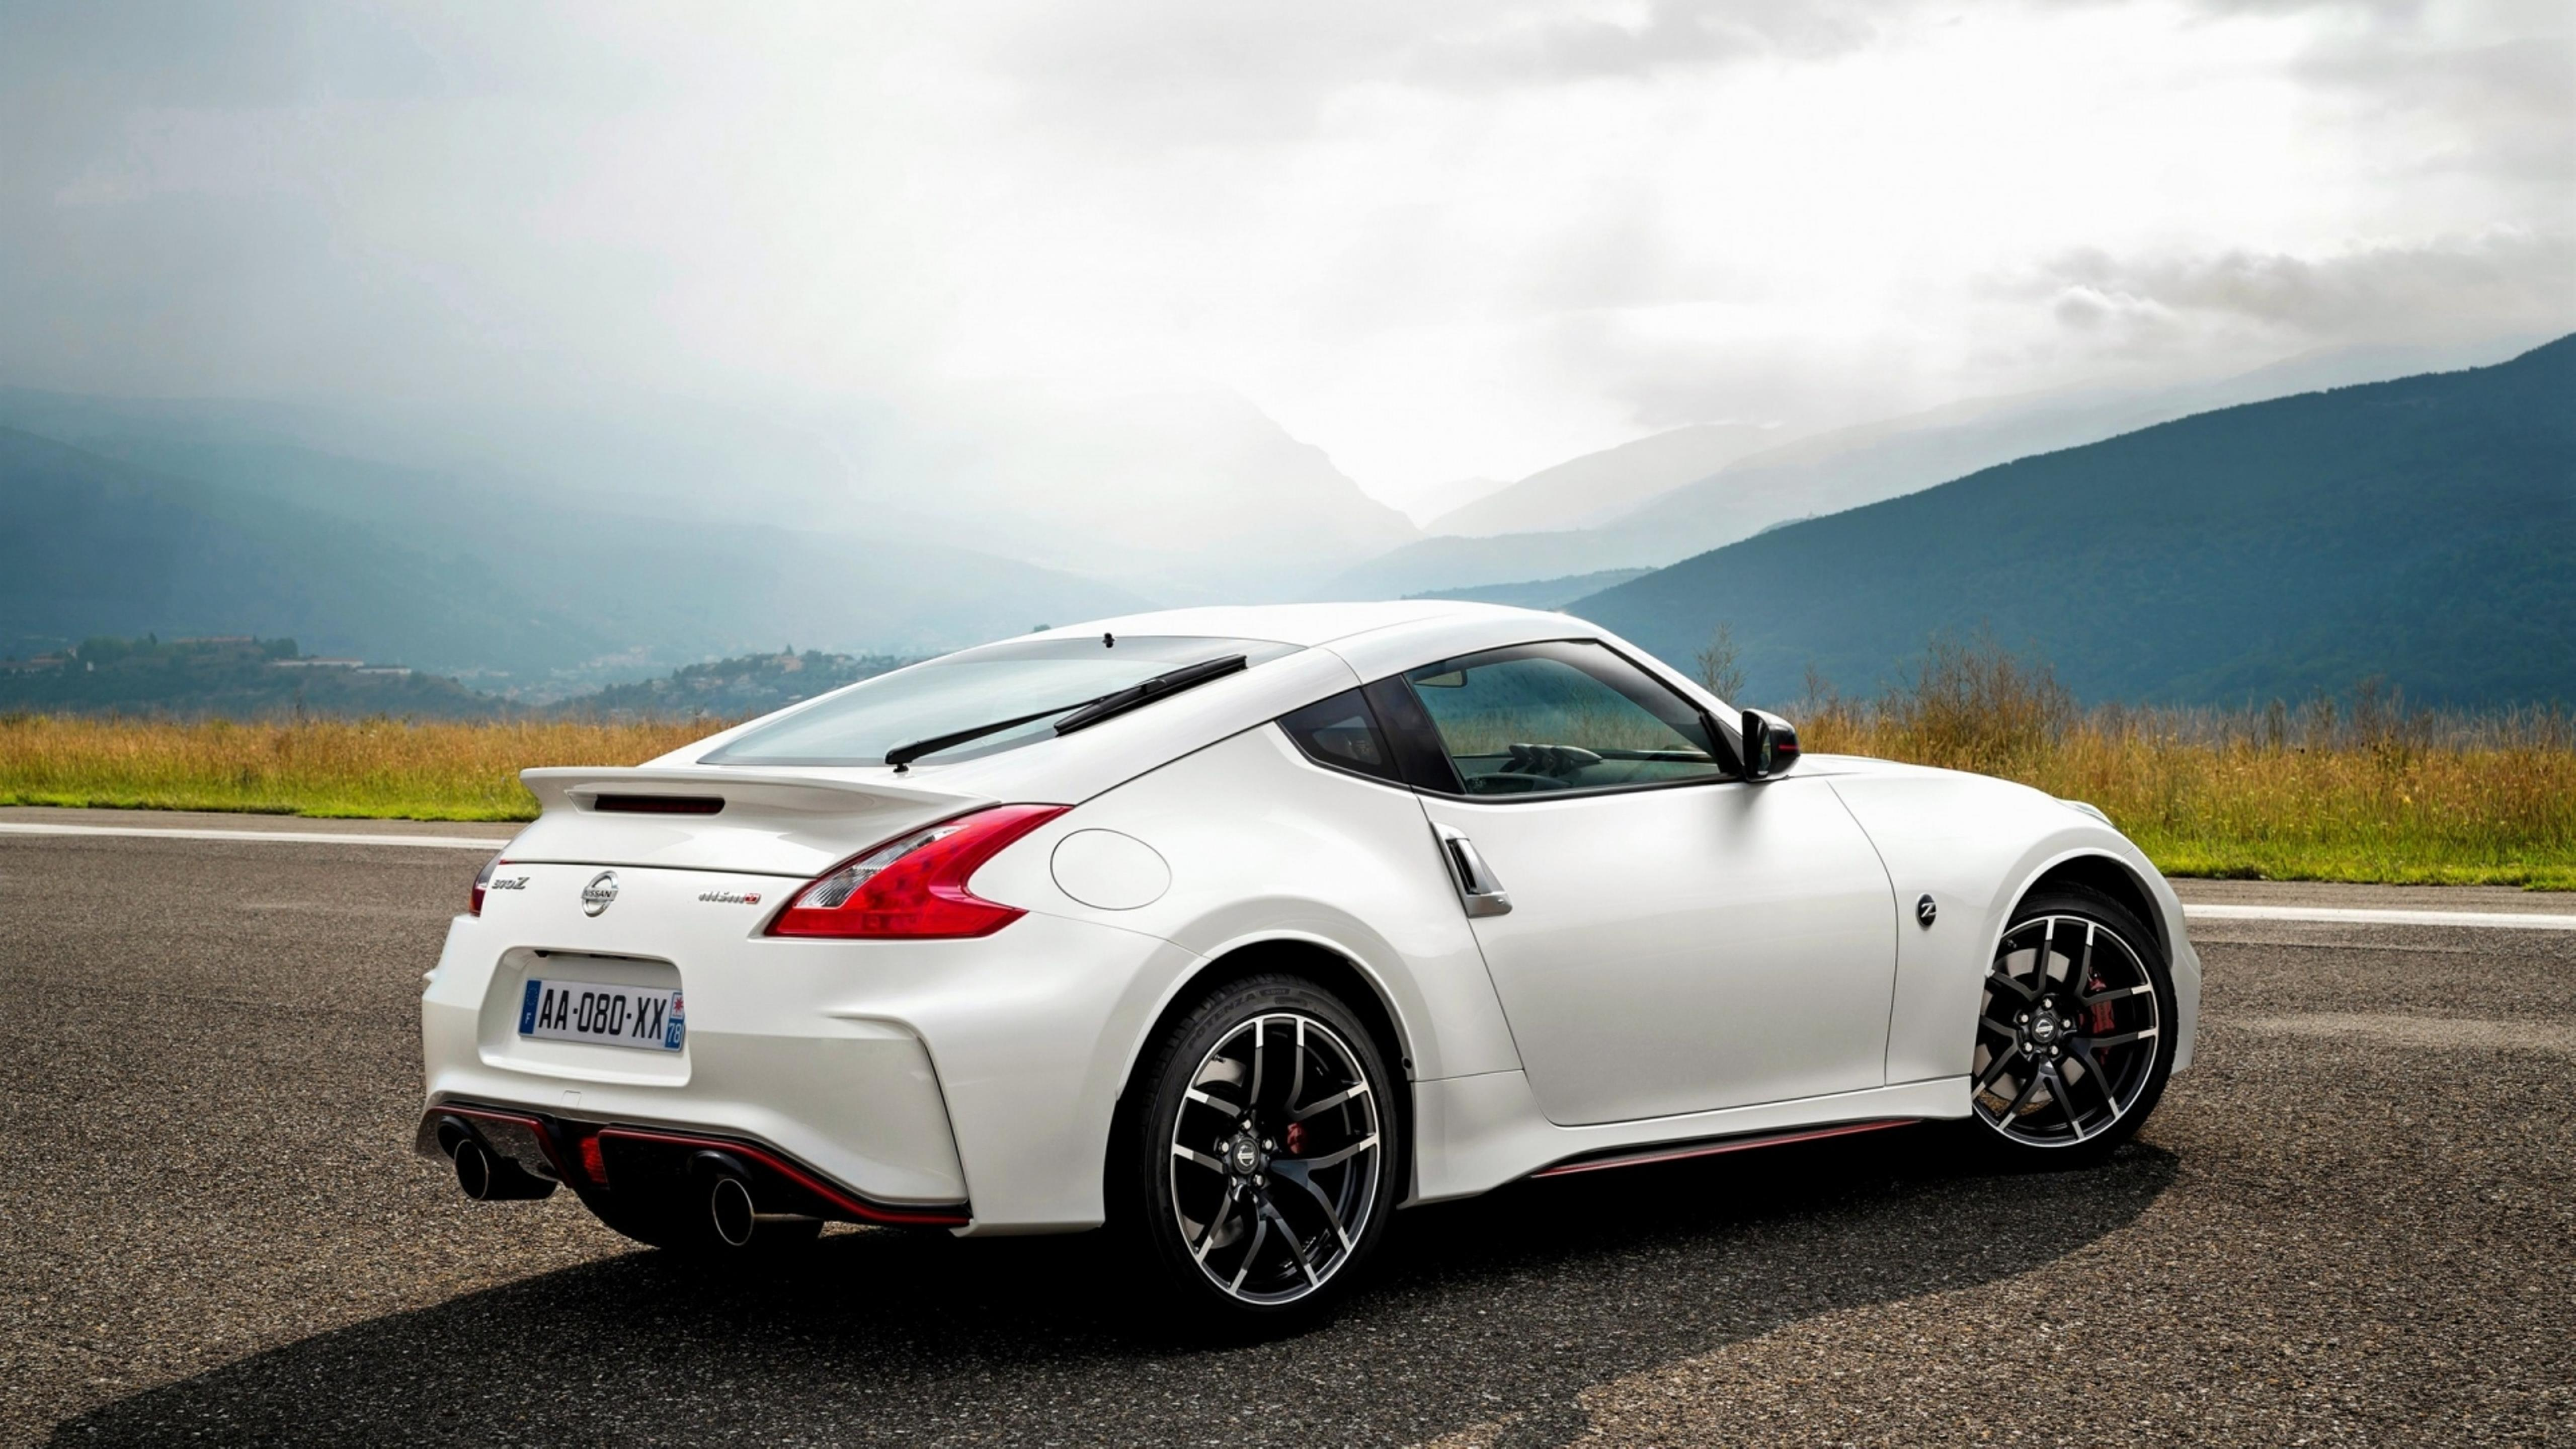 White Nissan 370Z Sport Car Wallpaper Wallpaper Download 5120x2880